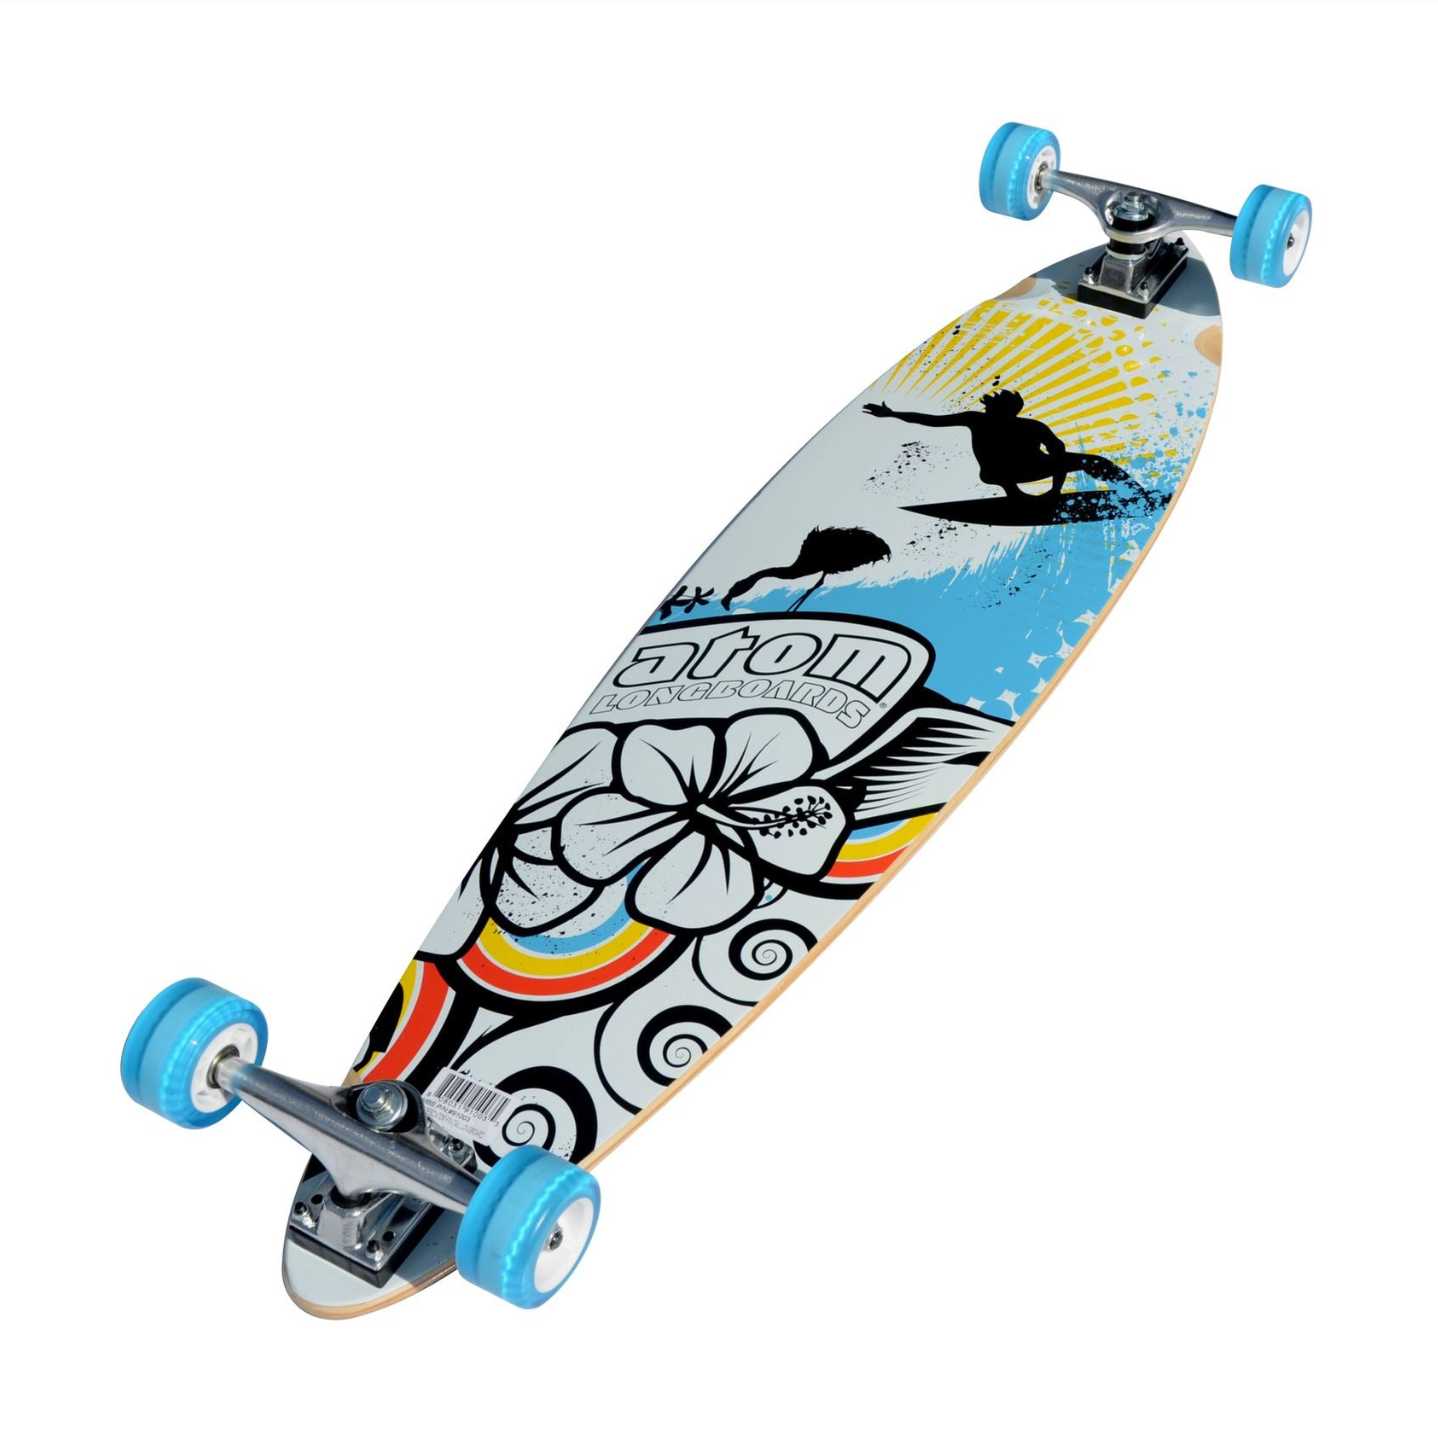 Image of Atom Pin-Tail Longboard - 39 Inch (Surf)